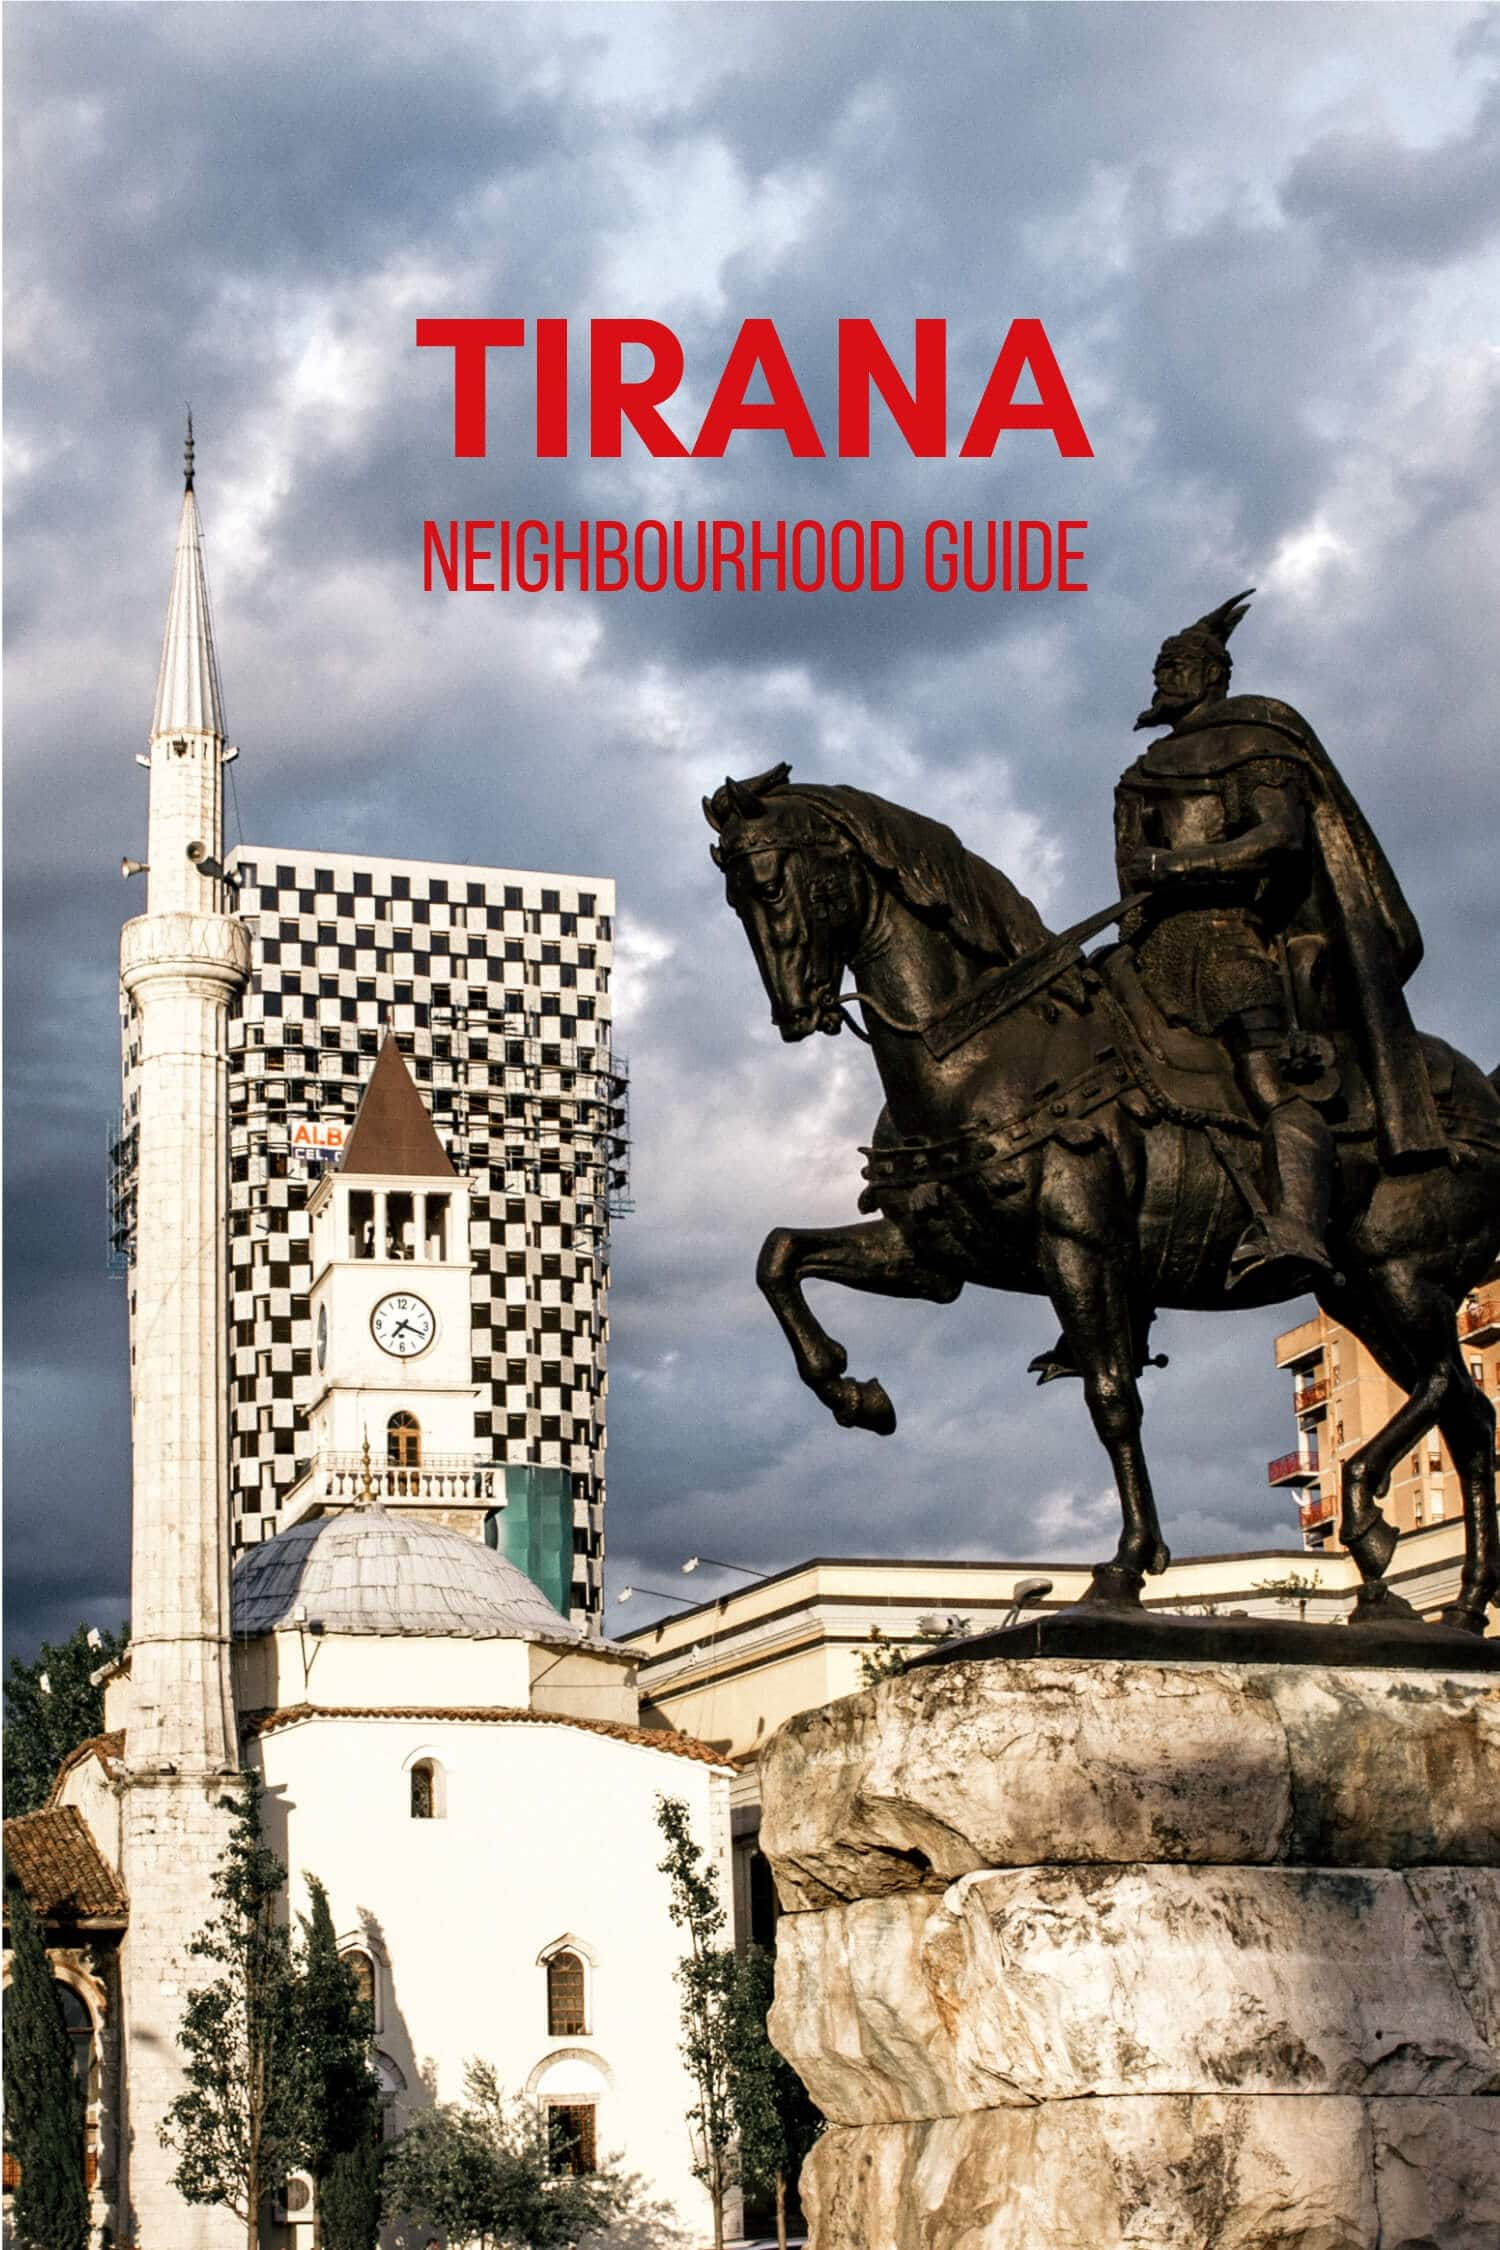 Where to Stay in Tirana